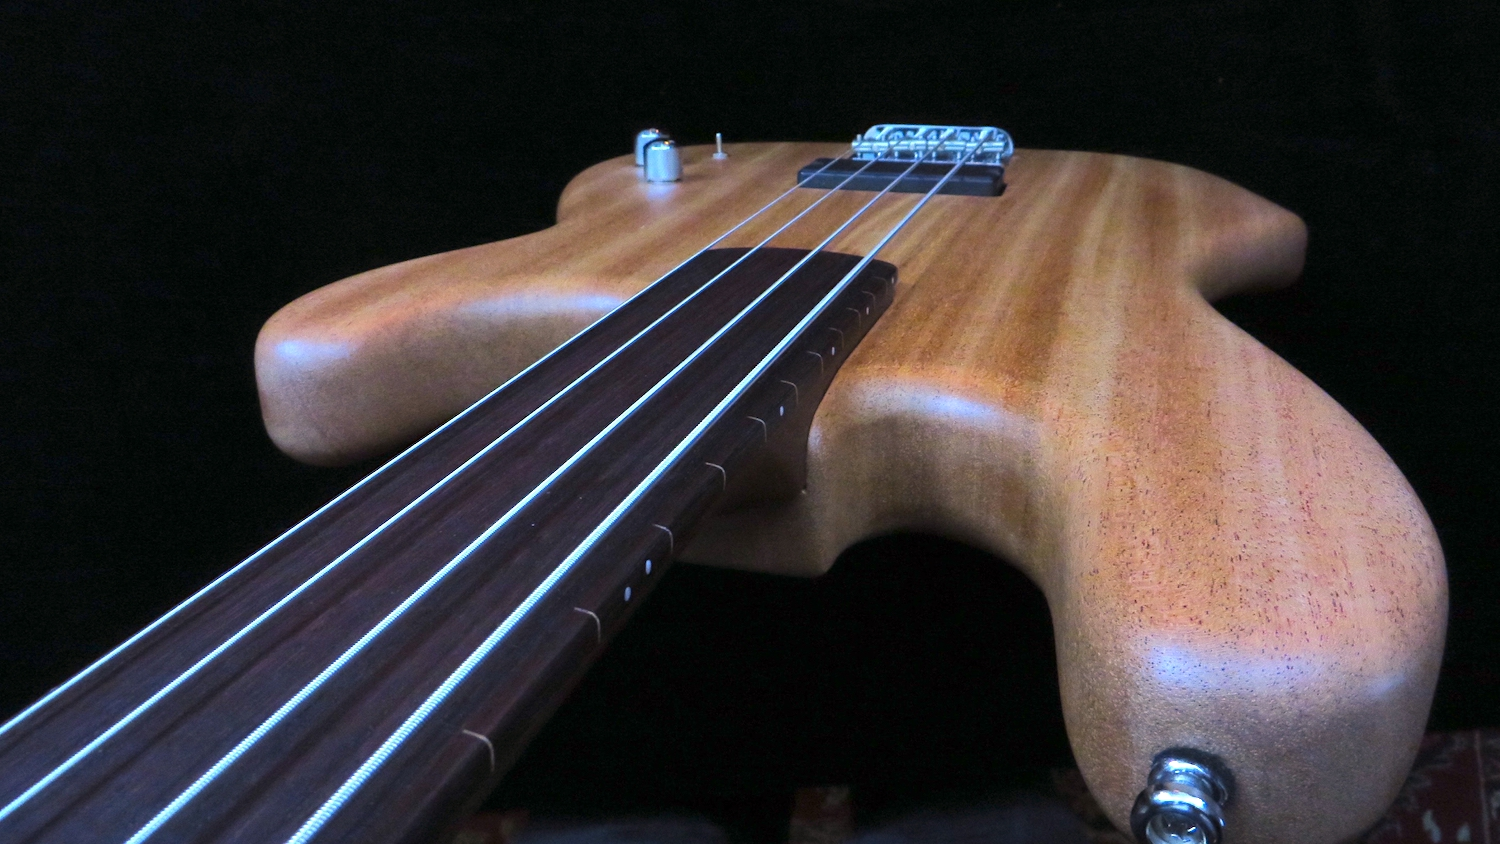 Fretless - The direct, pure sound, fingers pressing the strings on the fingerboard, no frets in between ...